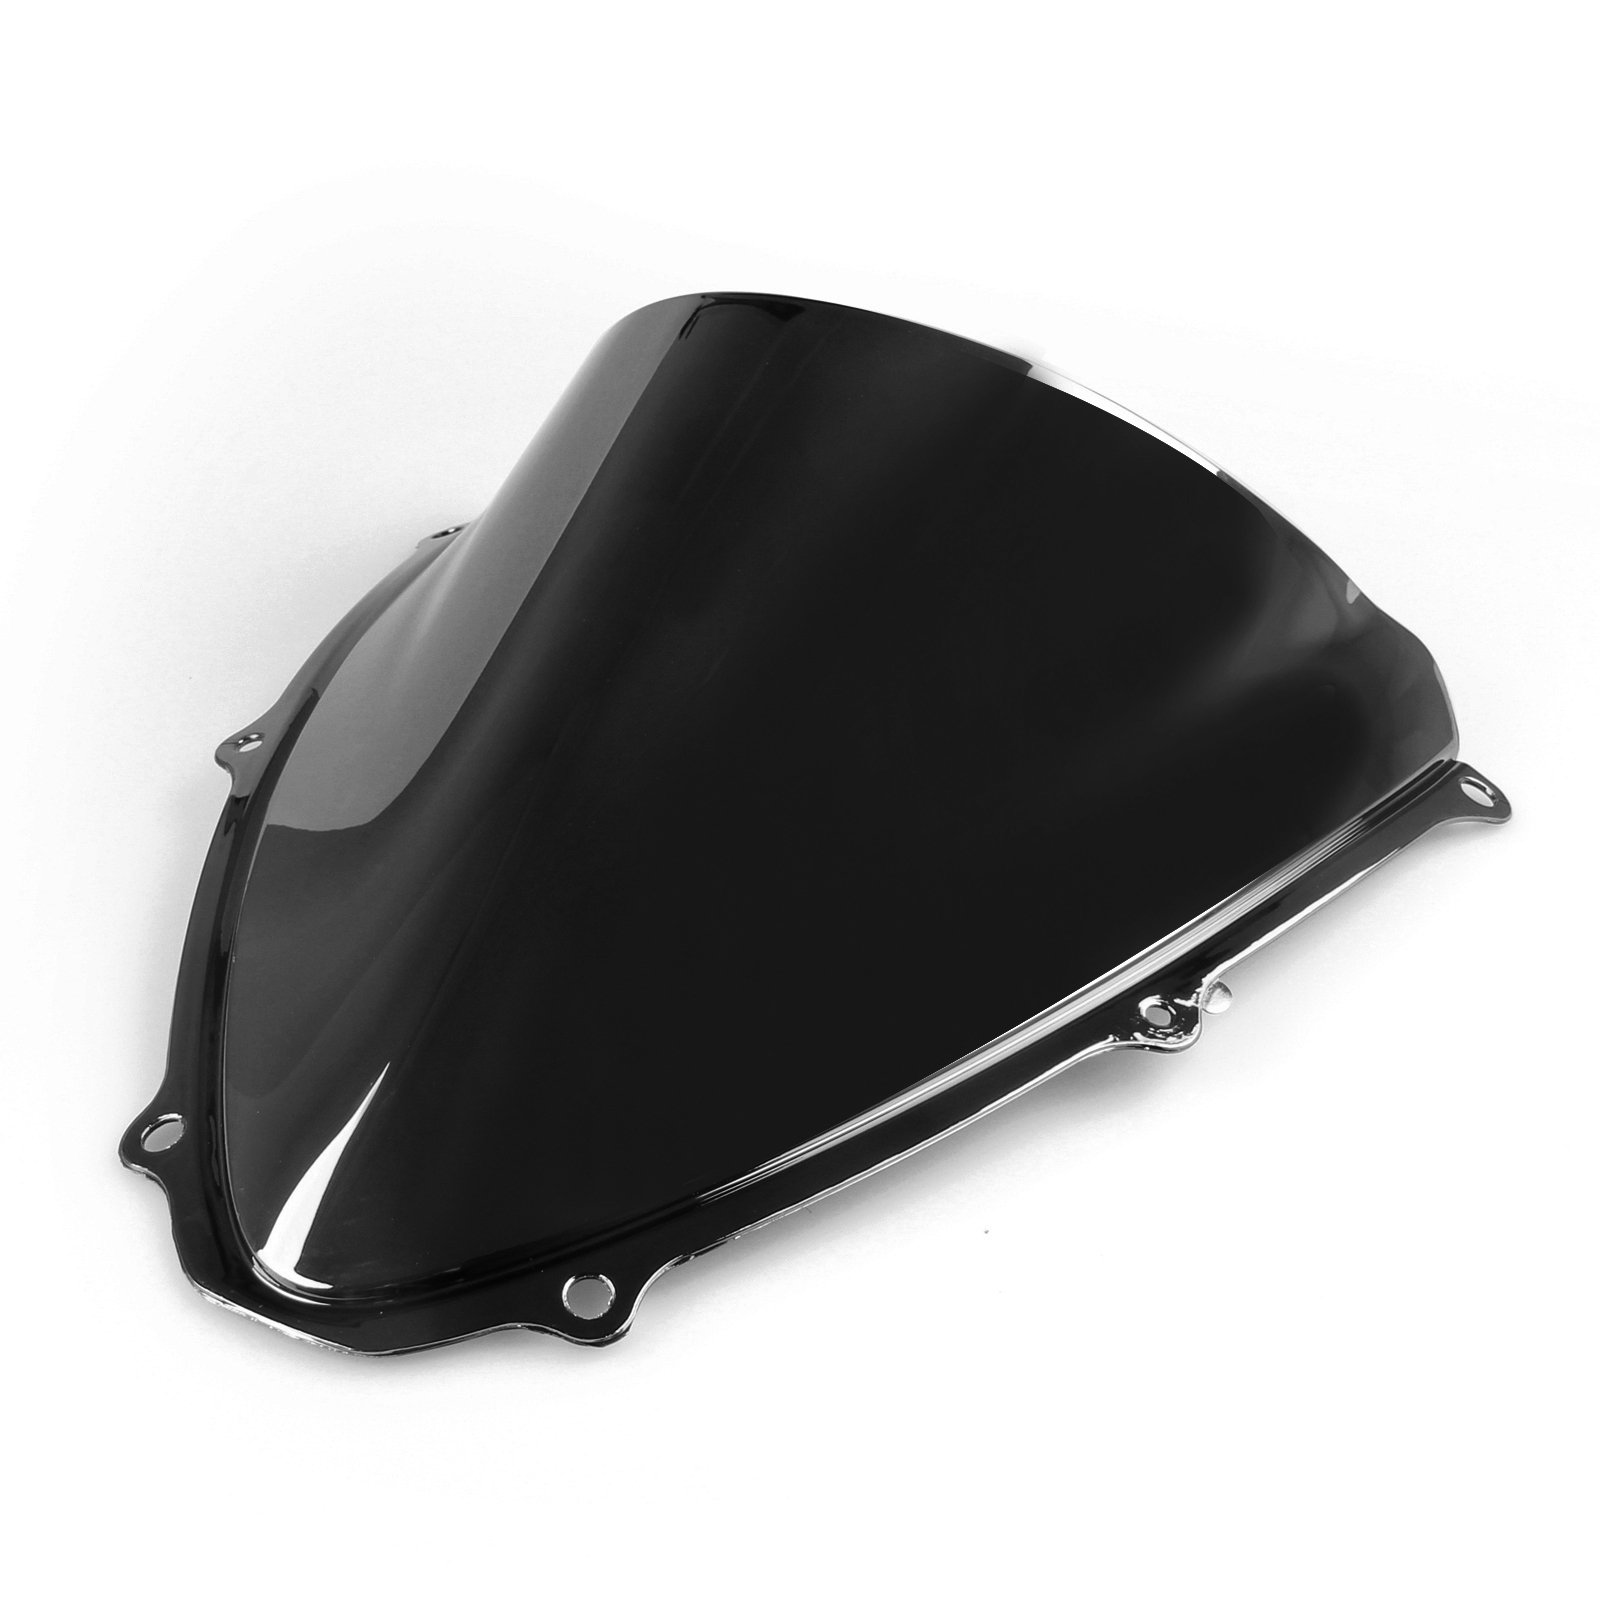 Artudatech Windshield WindScreen Double Bubble Suzuki GSXR 600/750 2006-2007 K6丨OEM Replacement